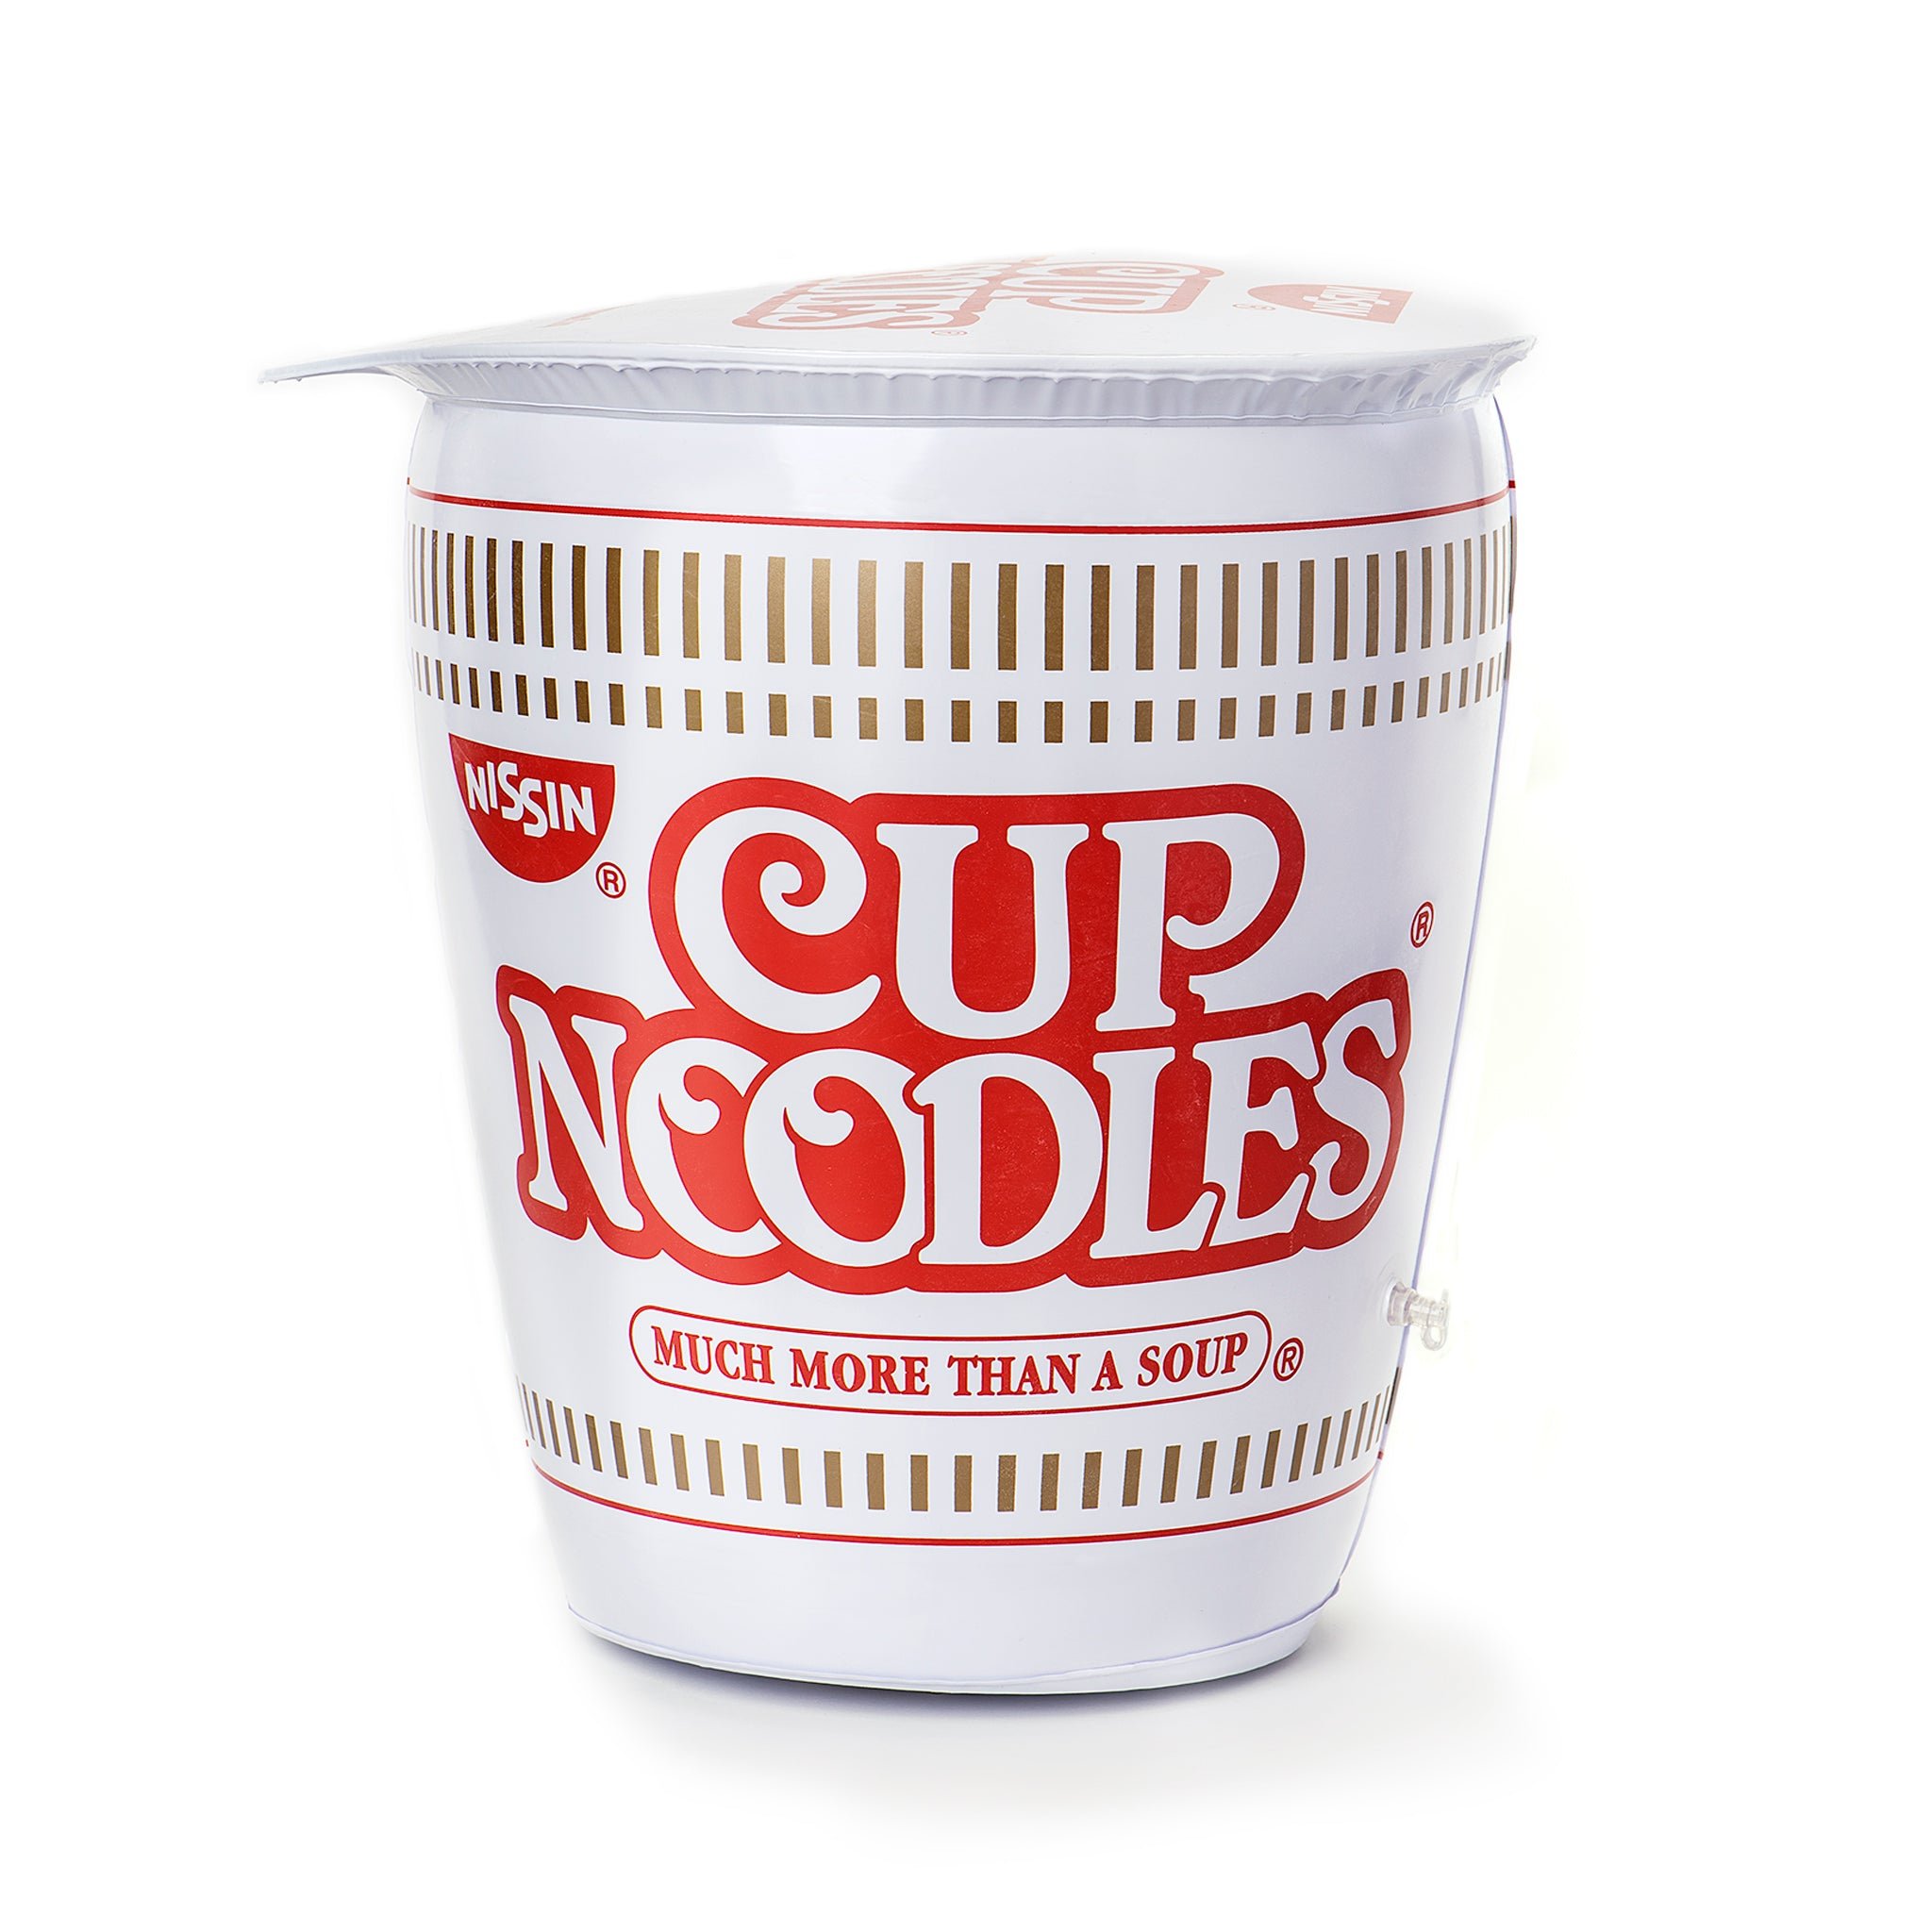 CUP NOODLES GIANT INFLATABLE